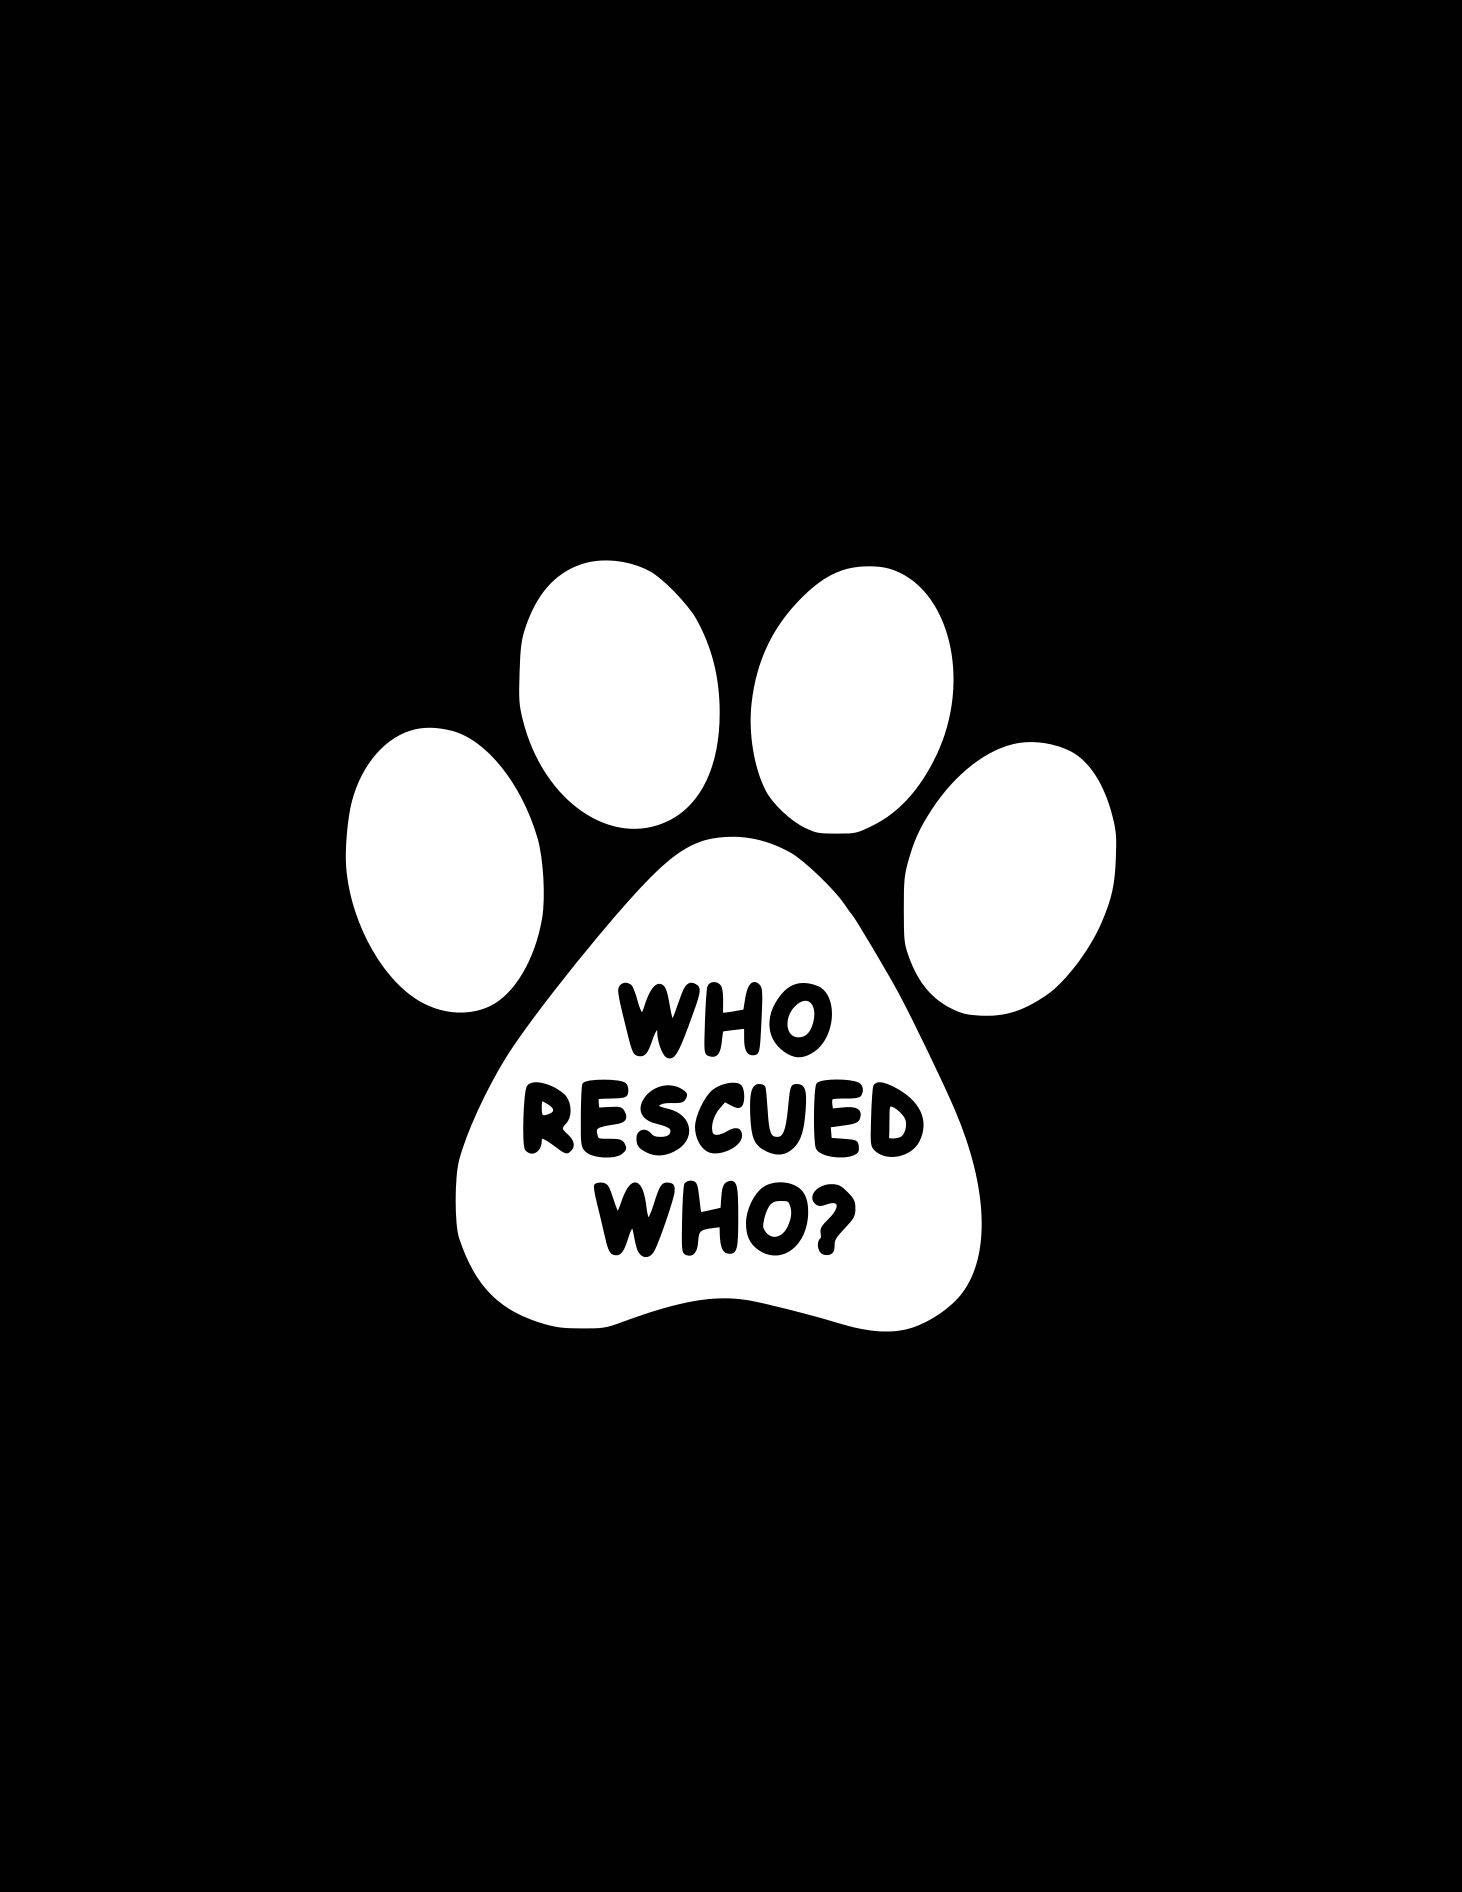 Window Decal Dog Rescuer Heart Paw Print Pet Rescue Animal Shelter Car Sticker